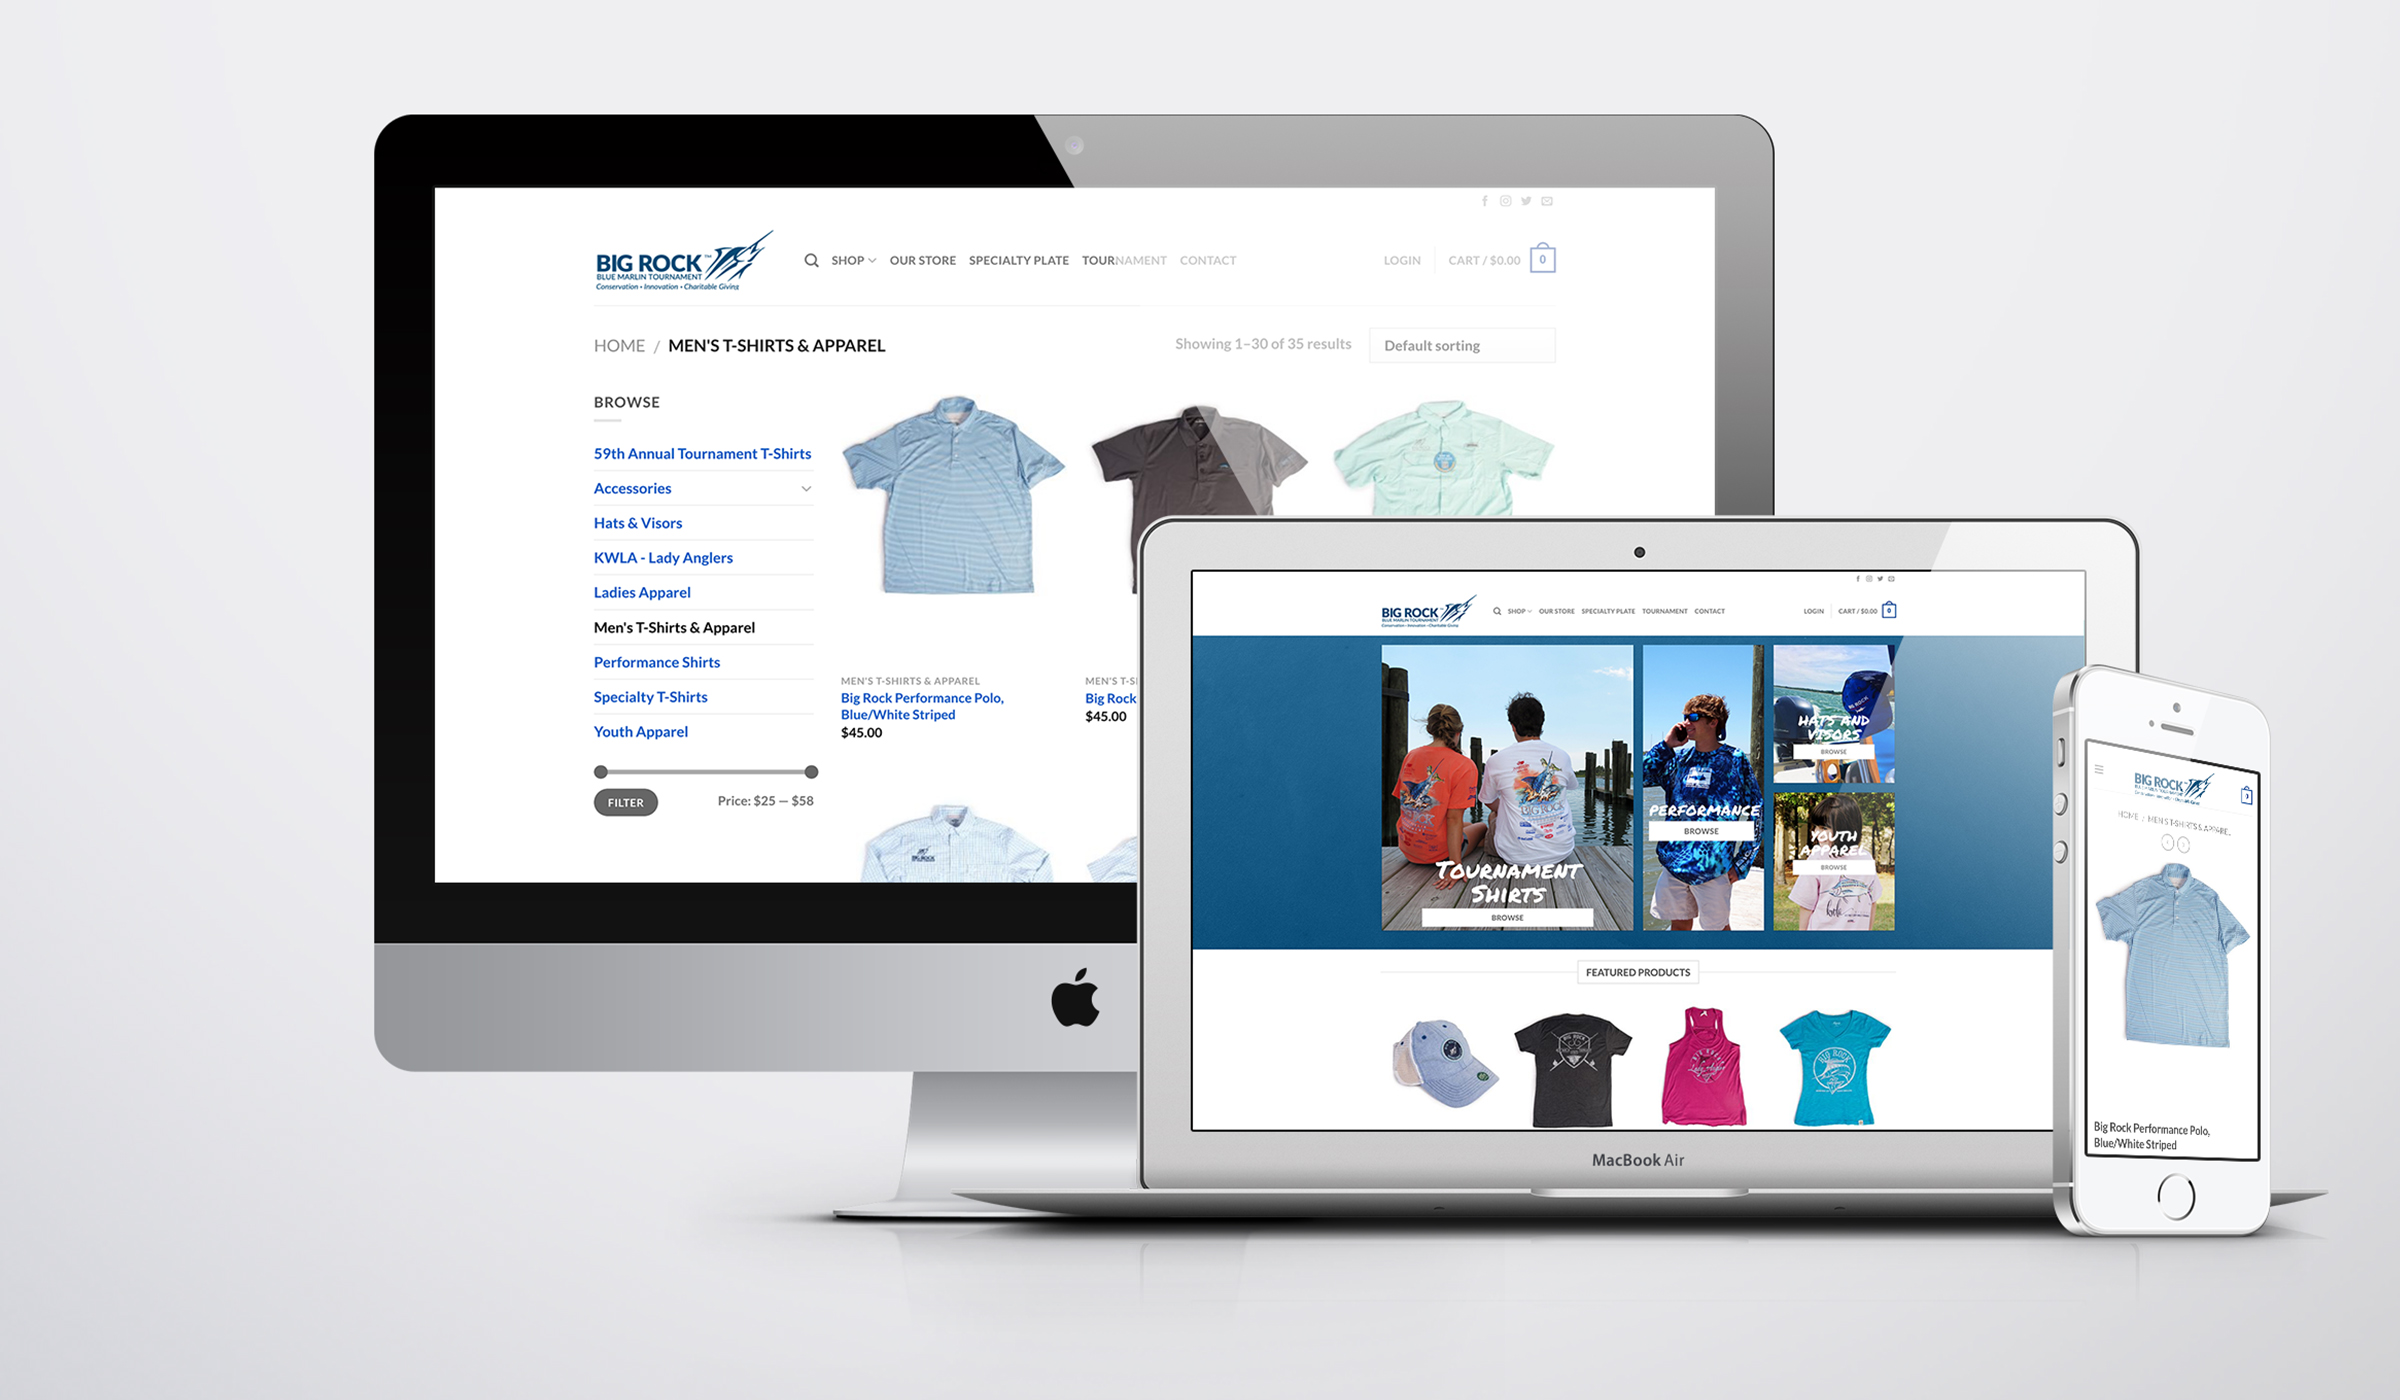 TAP Agency thebigrockstore.com, developed by TAP